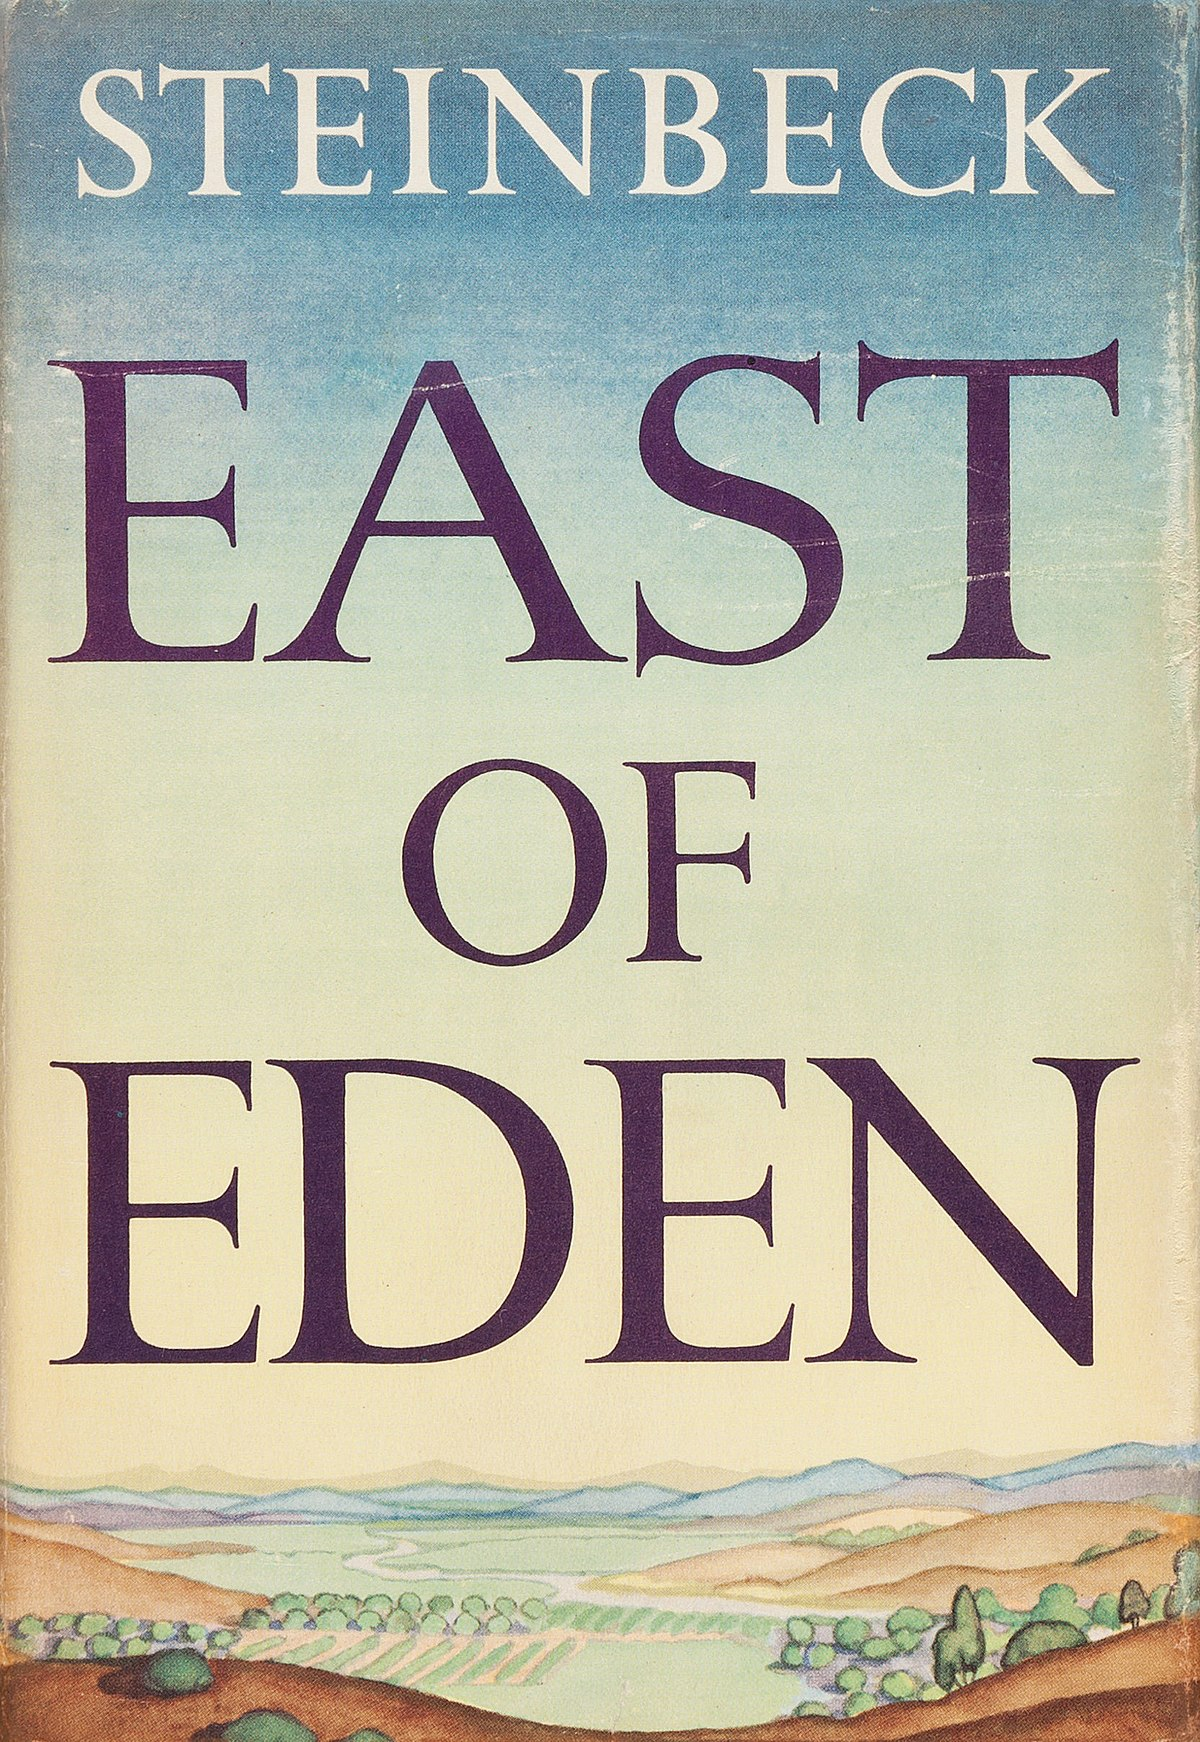 East of Eden (novel) - Wikipedia